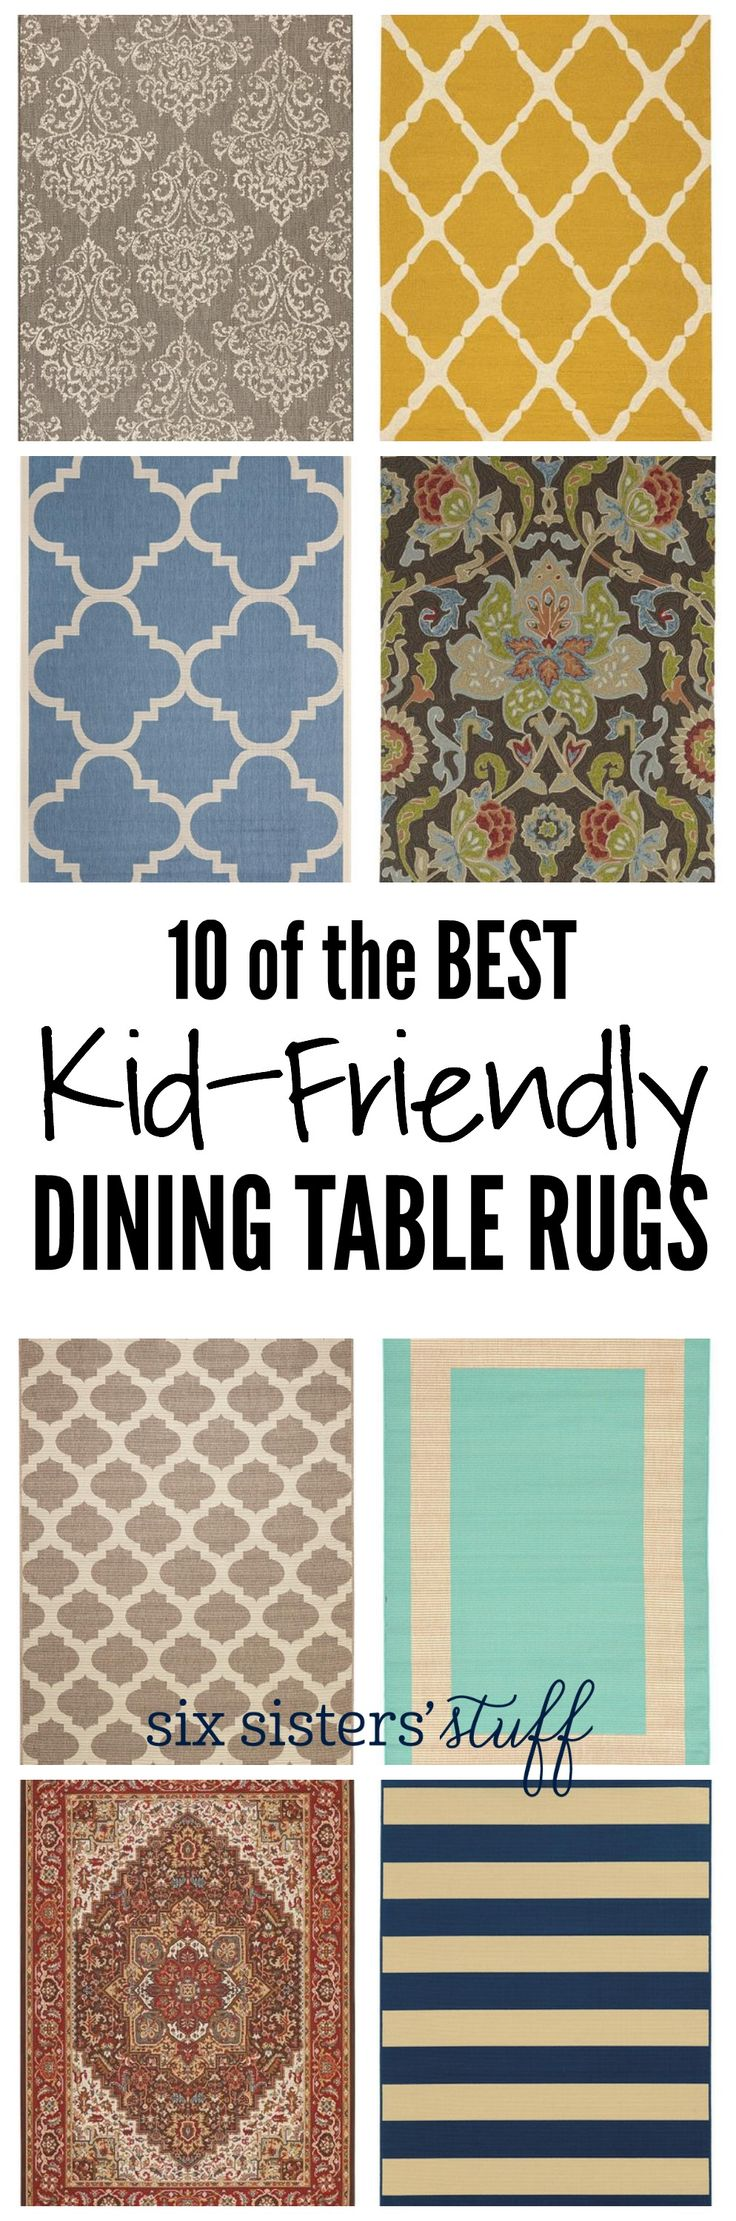 10 Of The BEST Kid Friendly Dining Table Rugs On SixSistersStuff